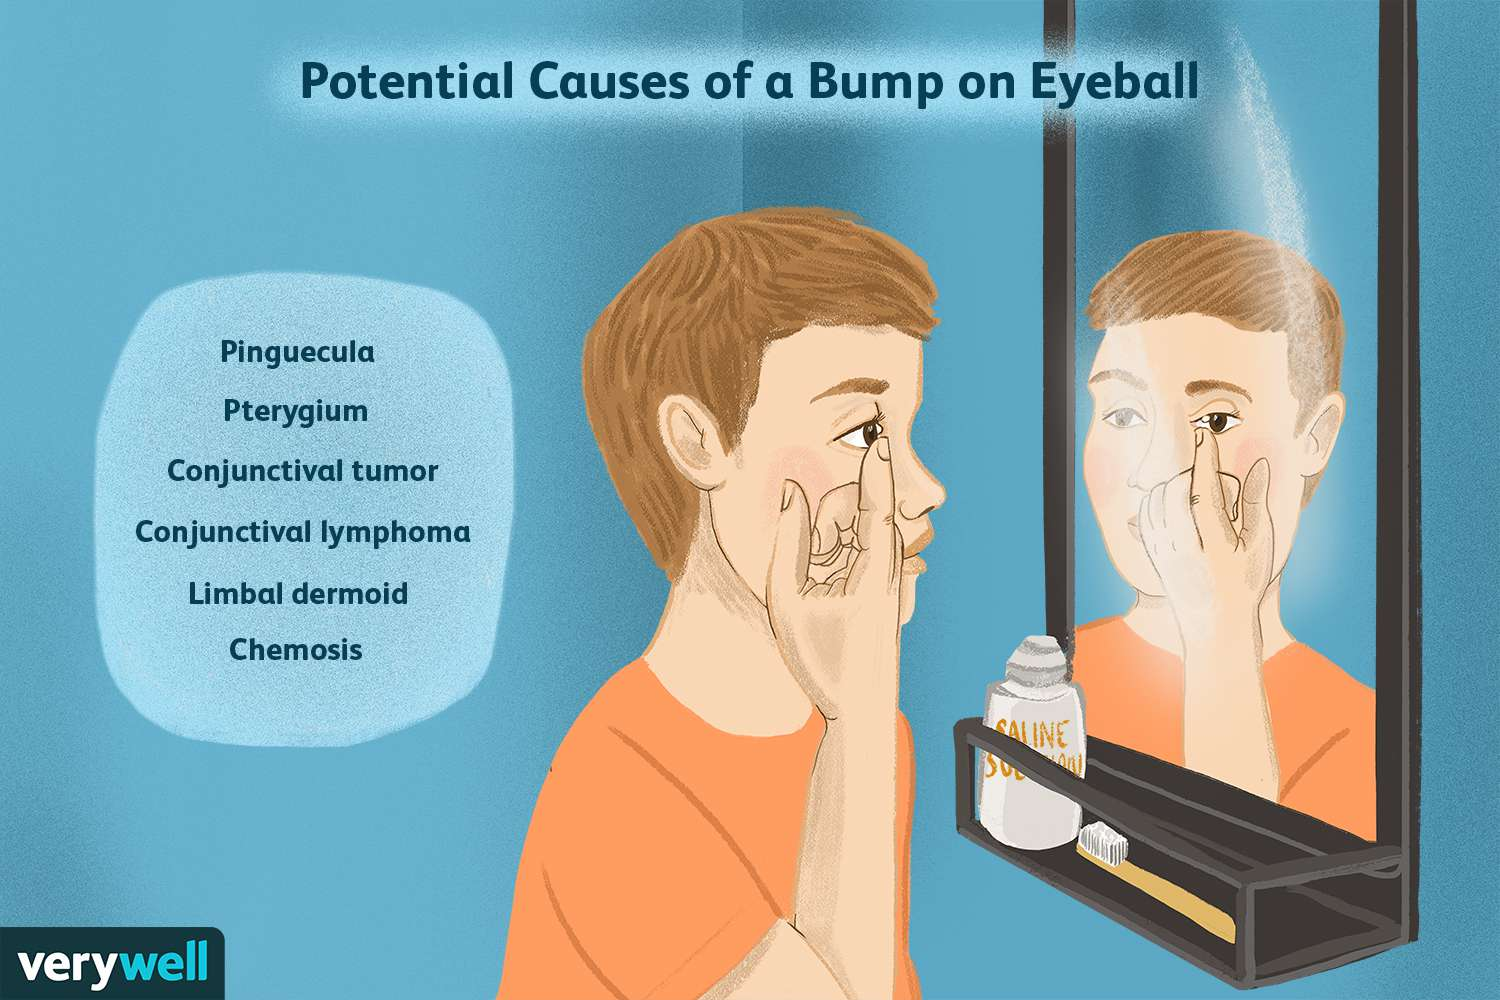 Potential Causes of a Bump on Eyeball